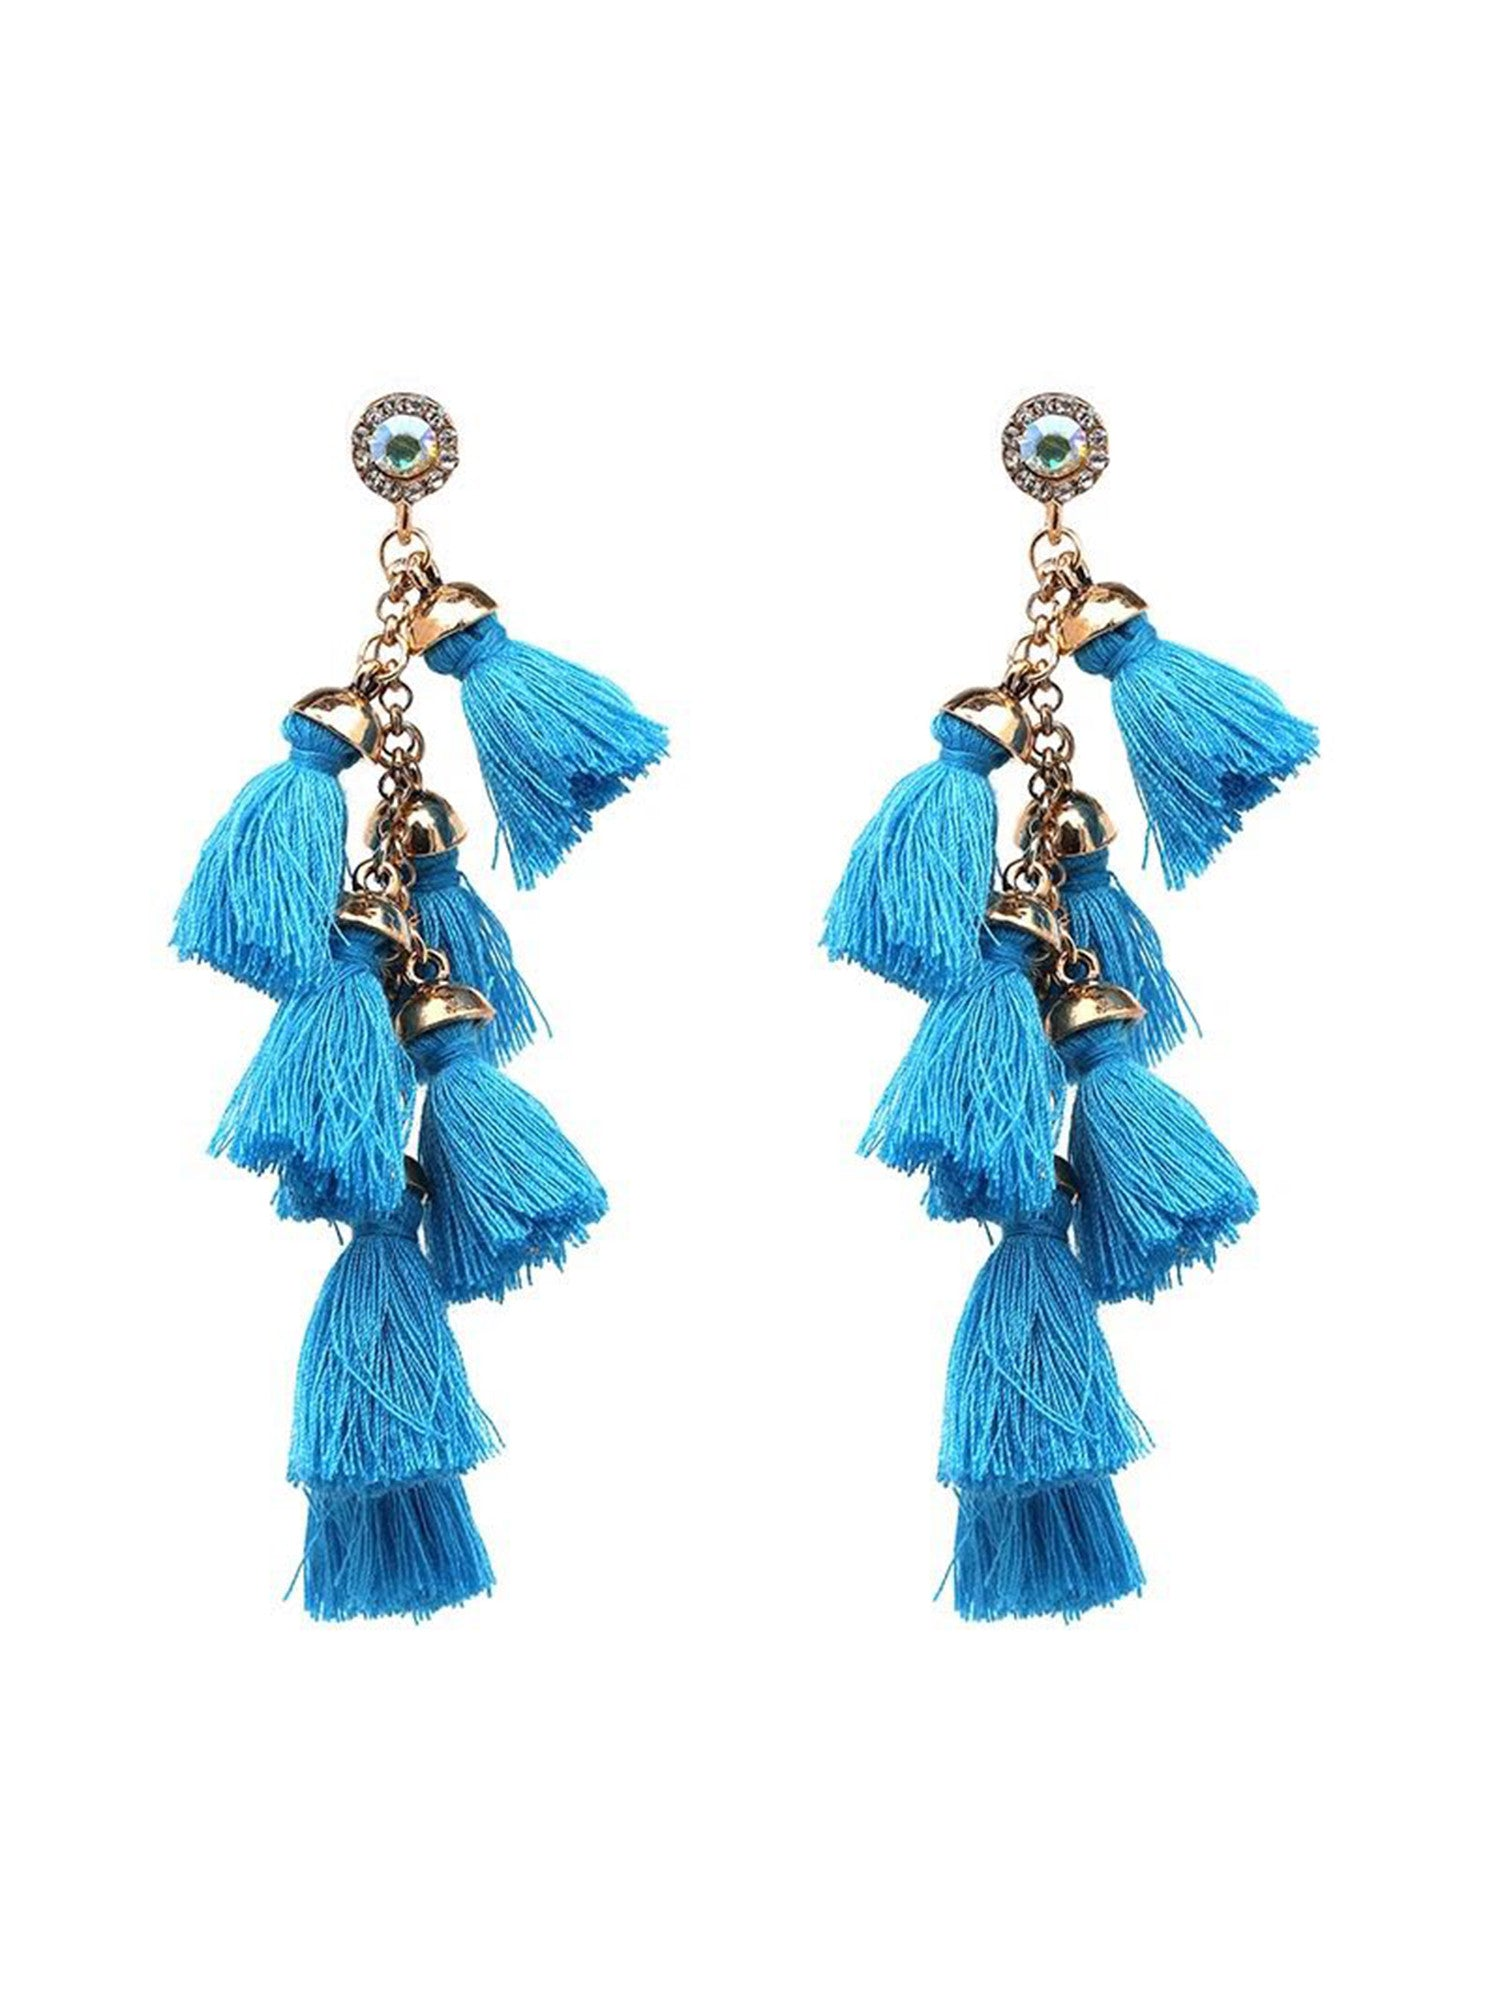 'Clarinda' Mini Tassels Drop Earrings